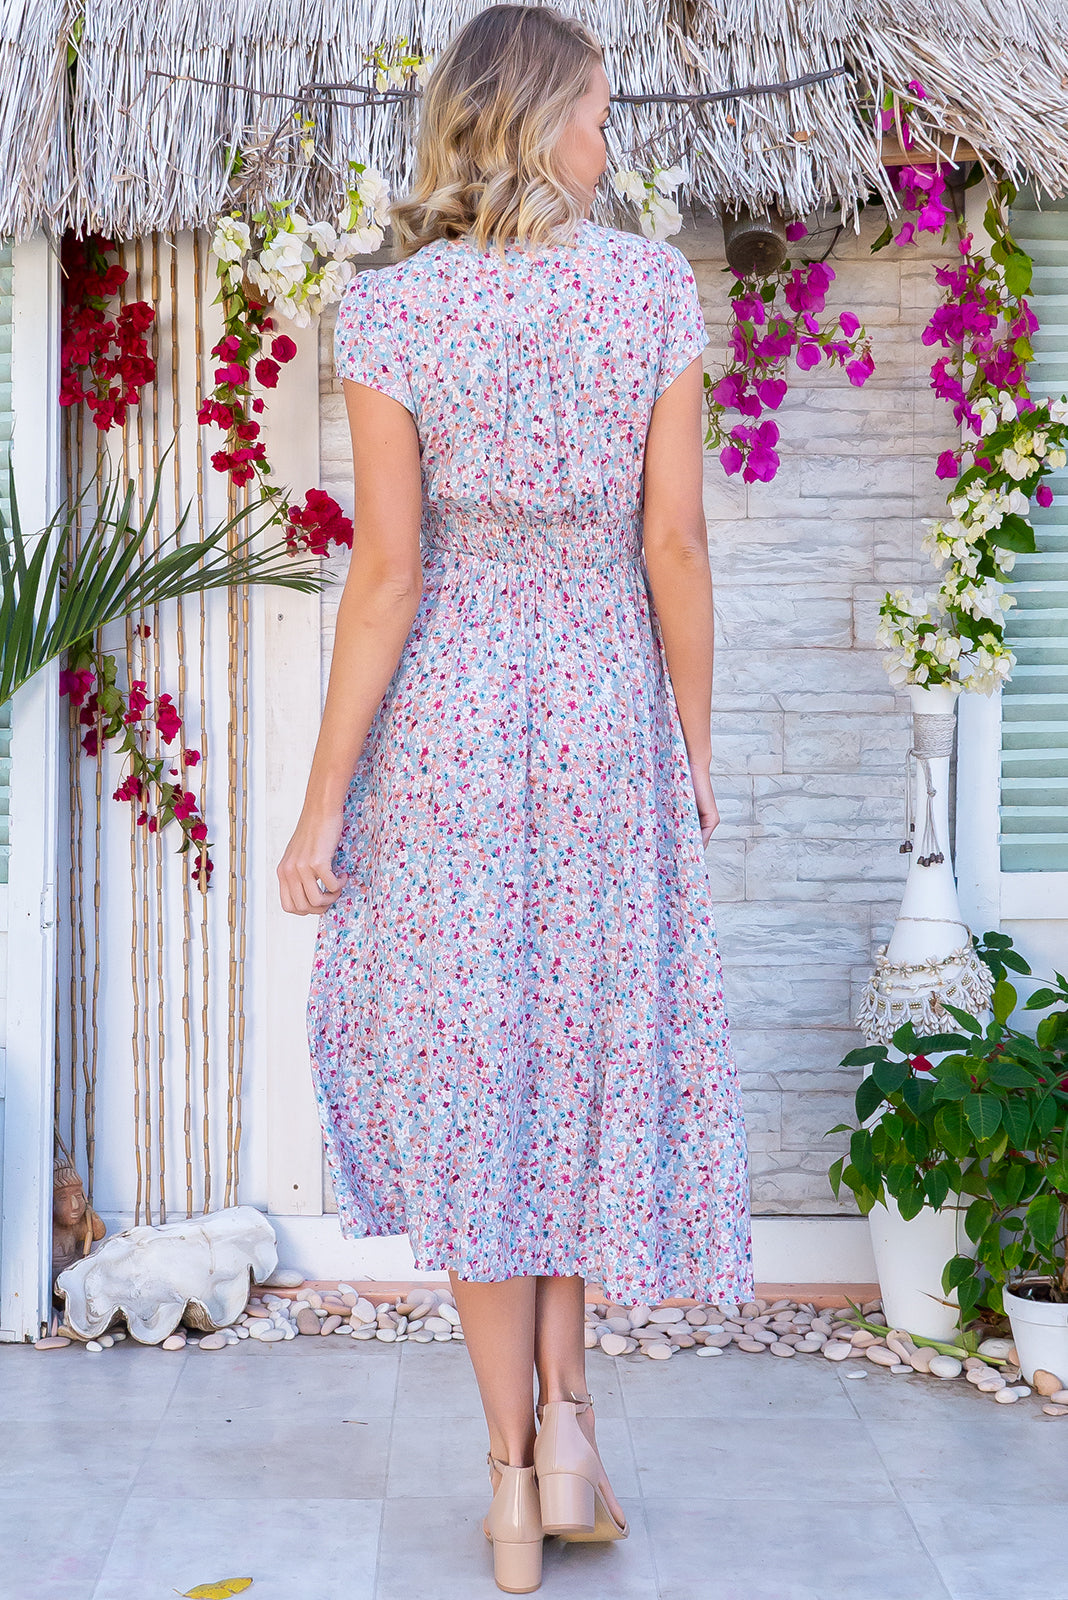 Jude Tea Party Dress is a beautiful rayon dress with pale warm grey base with red, mint and brown vintage miniature flowers and features softly fitted basque waist, V-neck design, functional button down to the hem, deep side pockets.